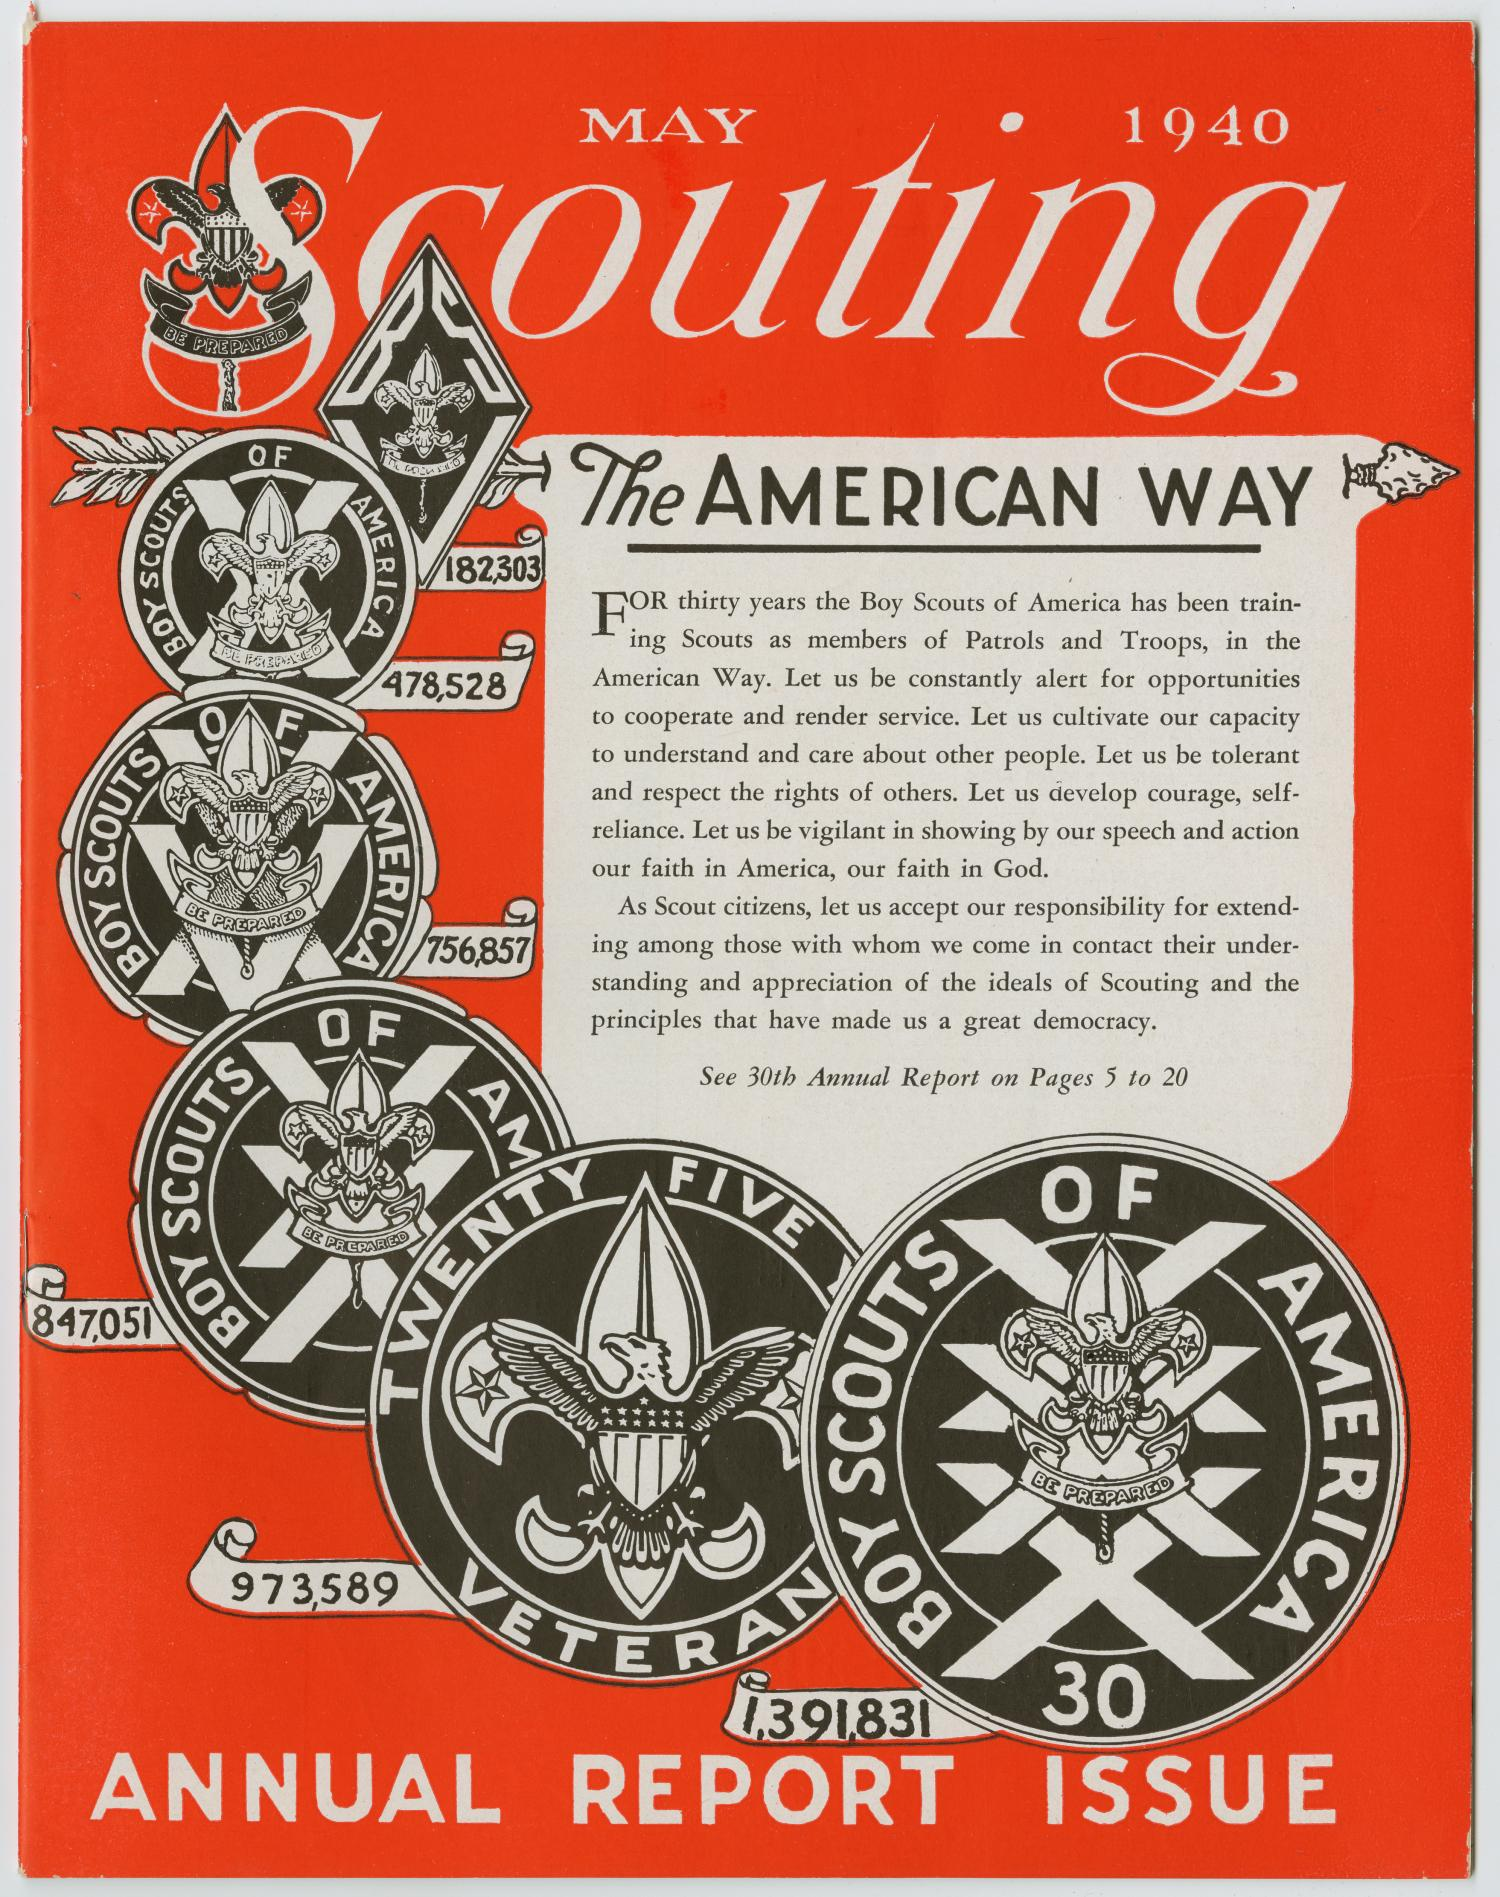 Scouting, Volume 28, Number 5, May 1940                                                                                                      1